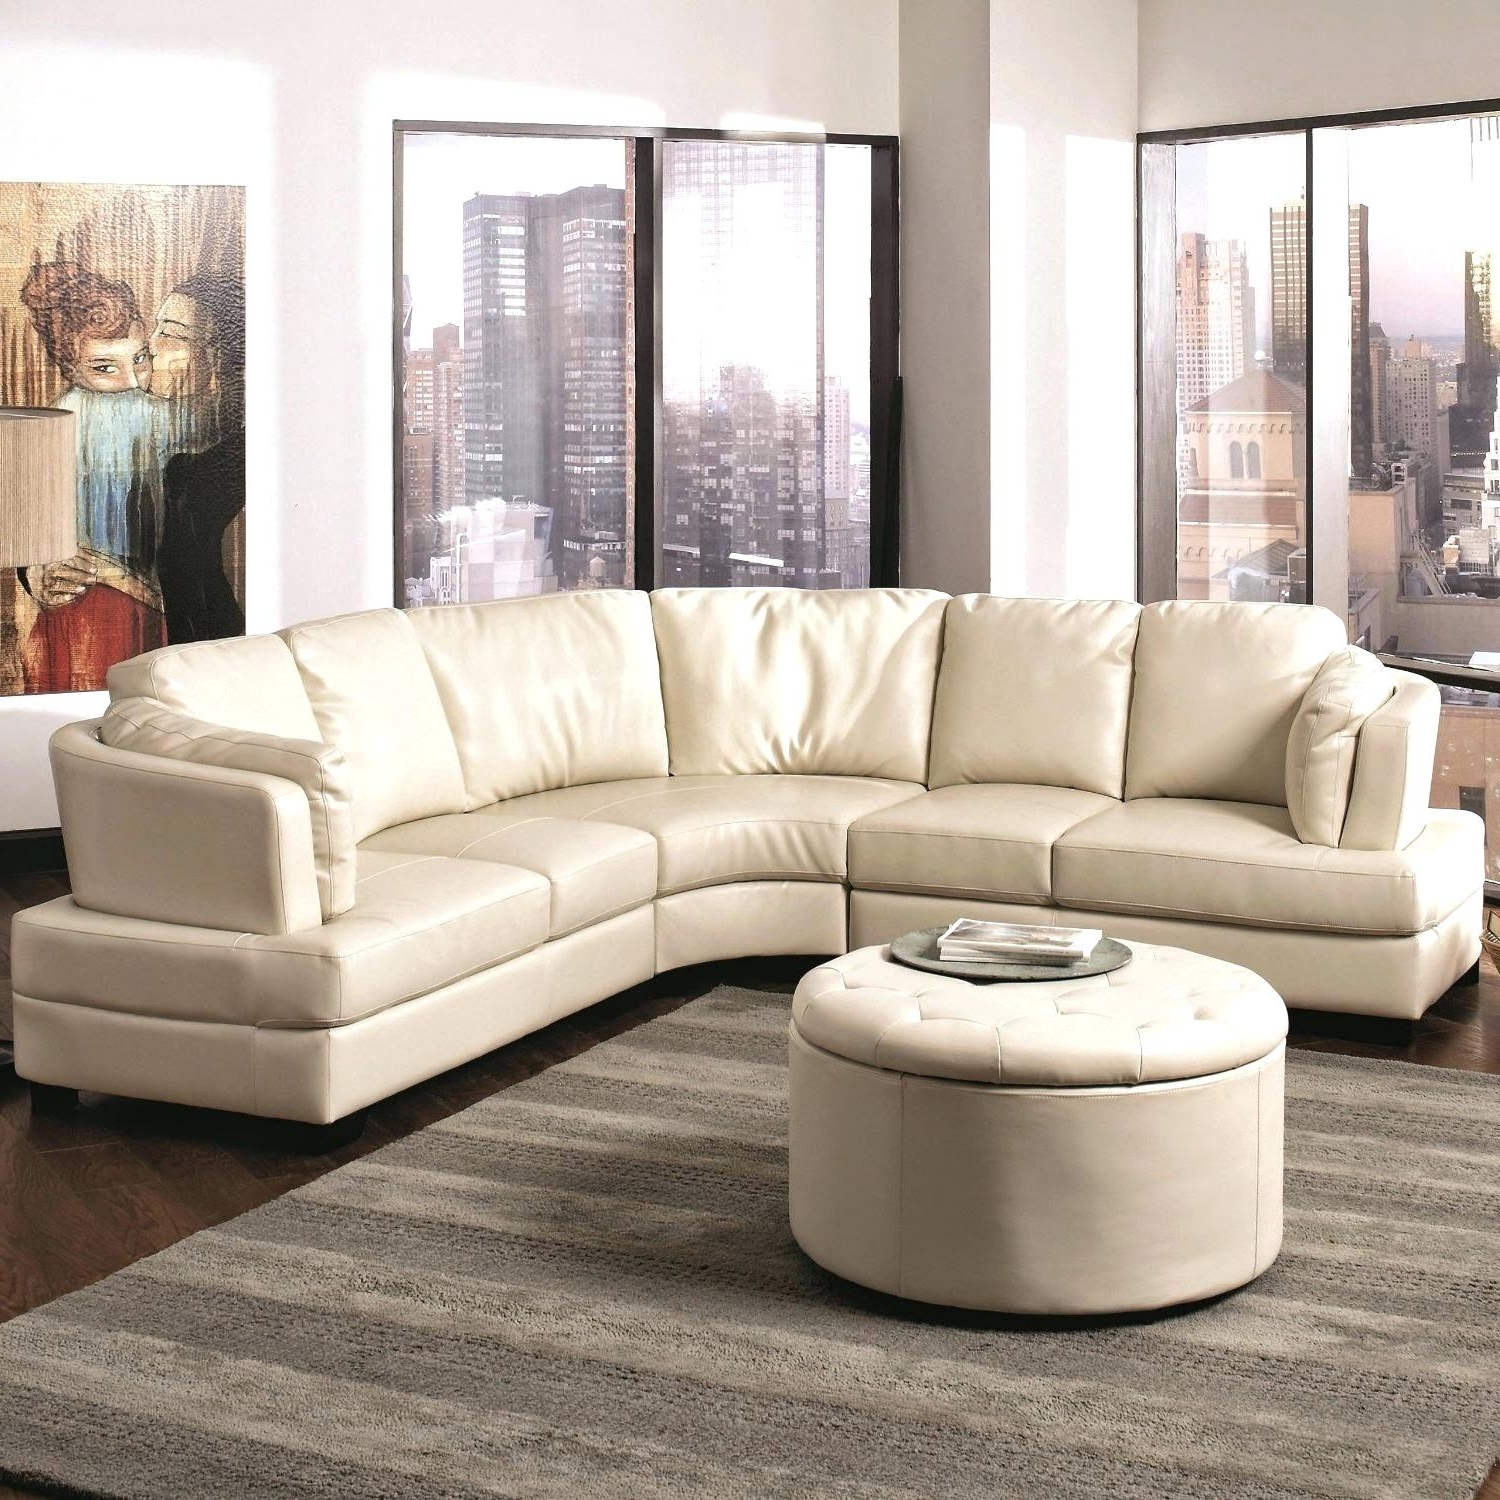 Newmarket Ontario Sectional Sofas For 2018 Sectional Sofa Sale Sa Couches For Near Me Liquidation Toronto (View 3 of 20)